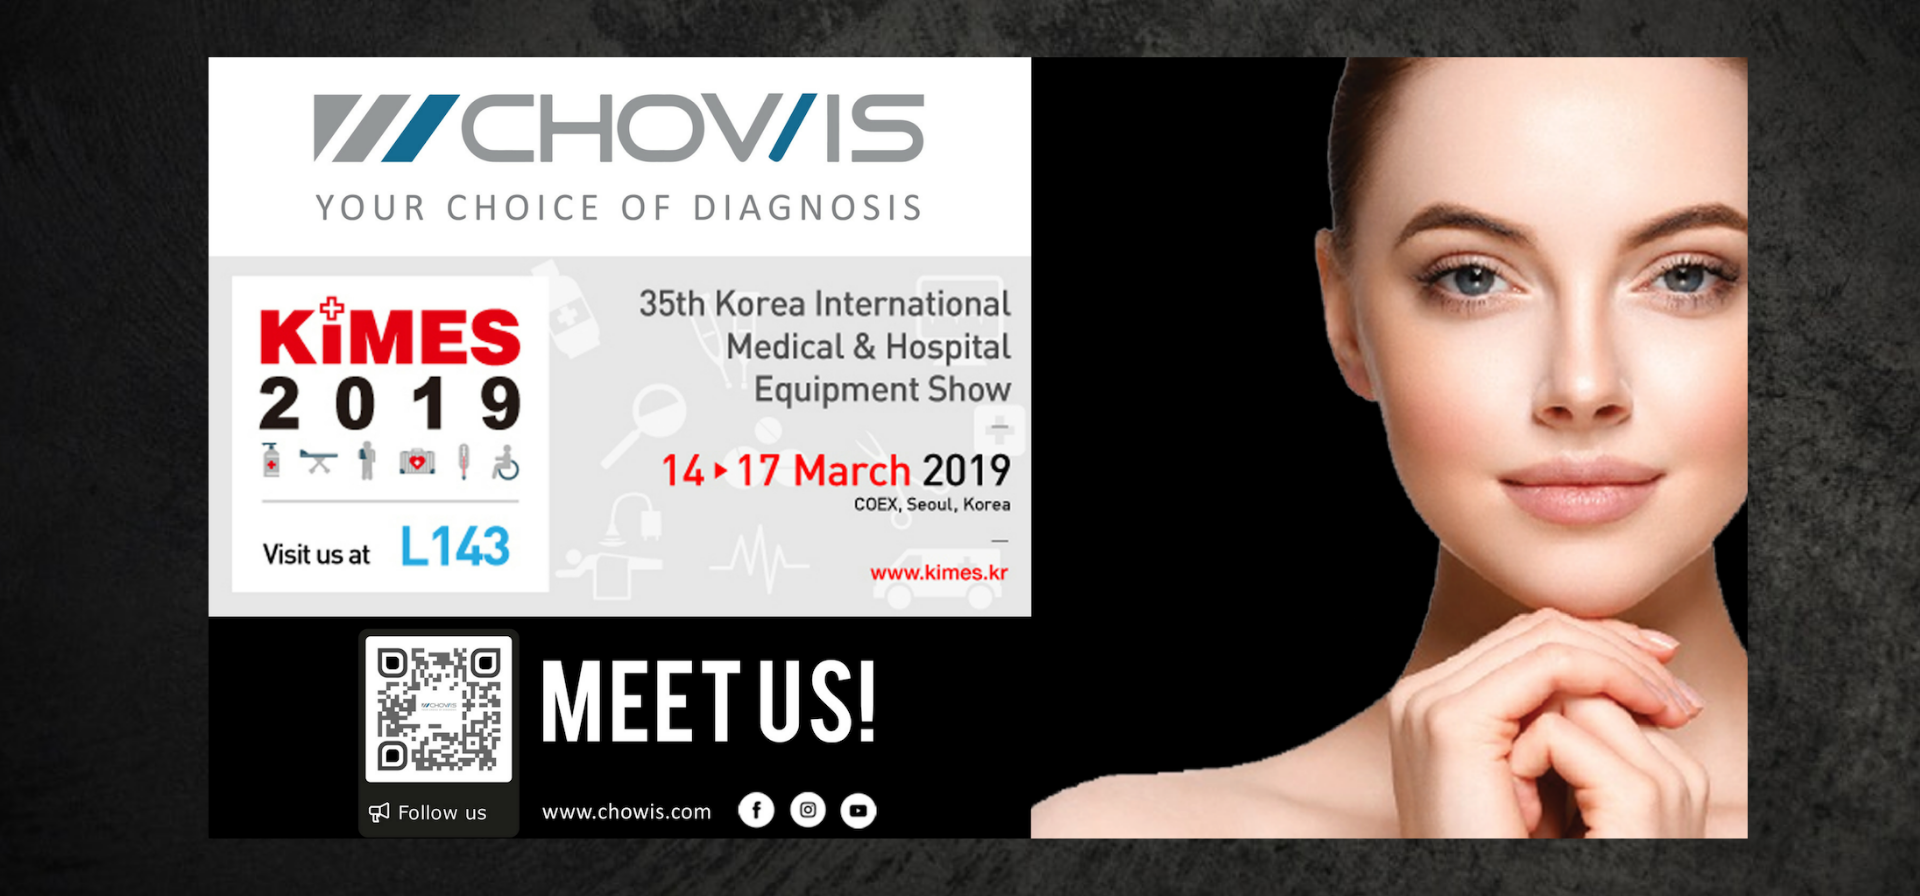 KIMES 2019 : Chowis Joins Korea's Largest Medical Equipment